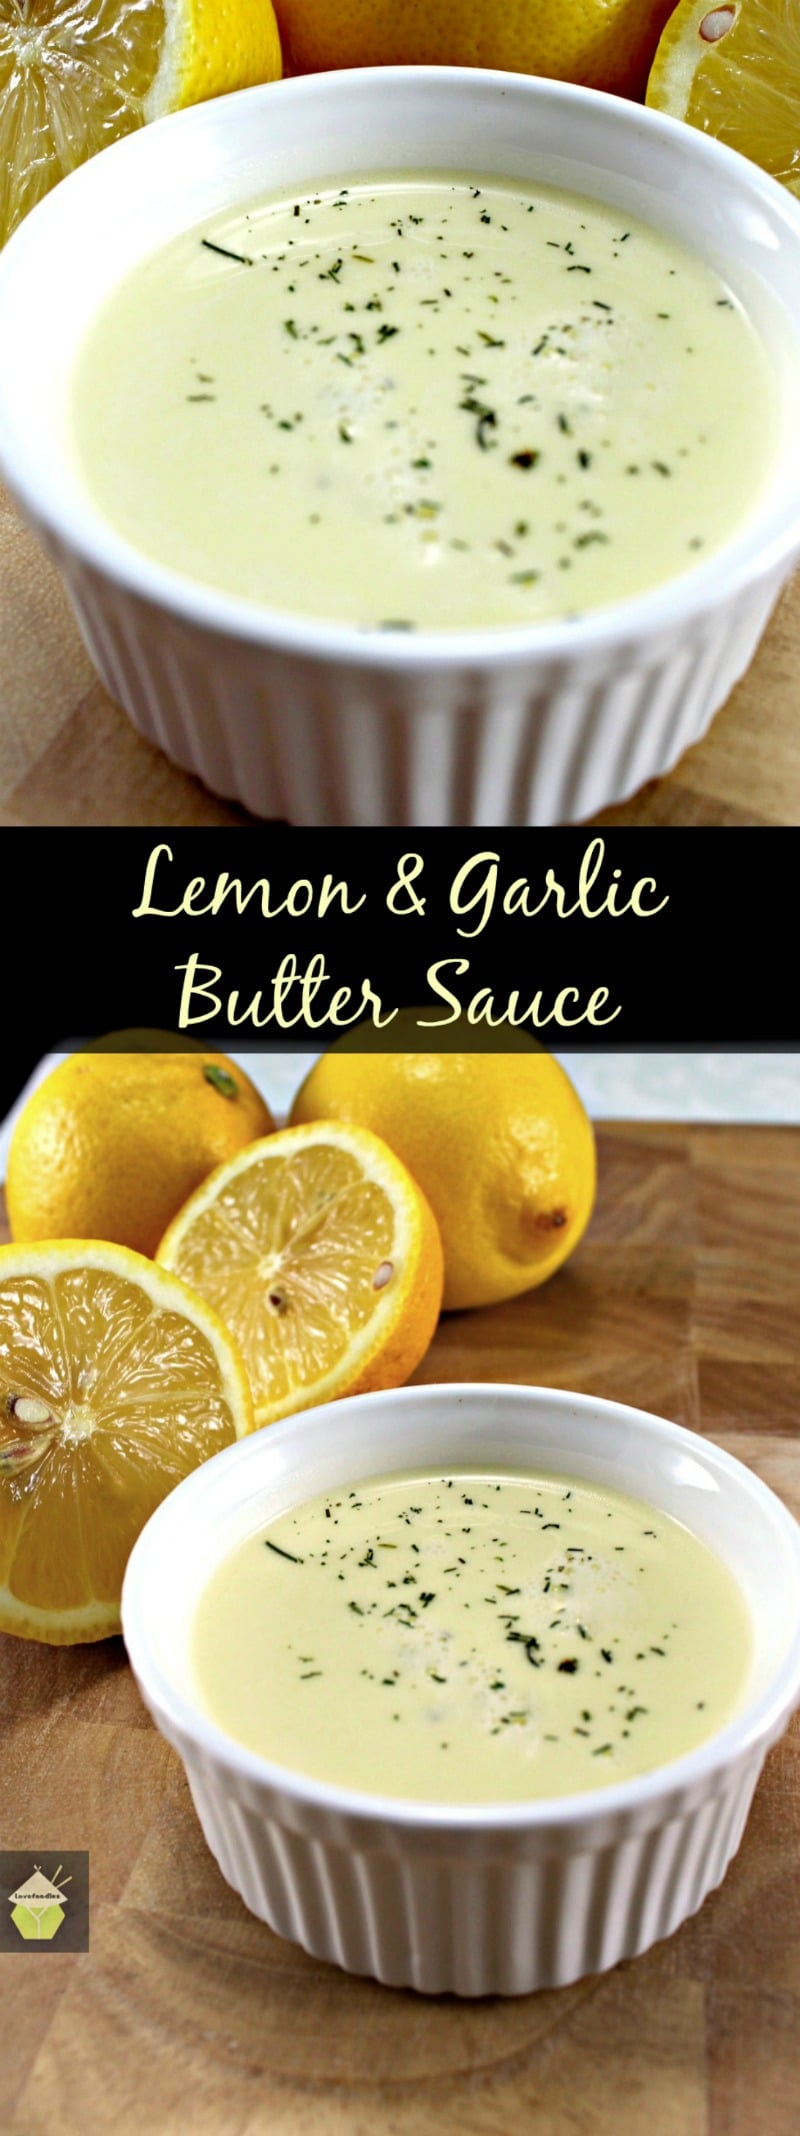 Lemon and Garlic Butter Sauce. This is delicious served with seafood, fish, chicken or pork.